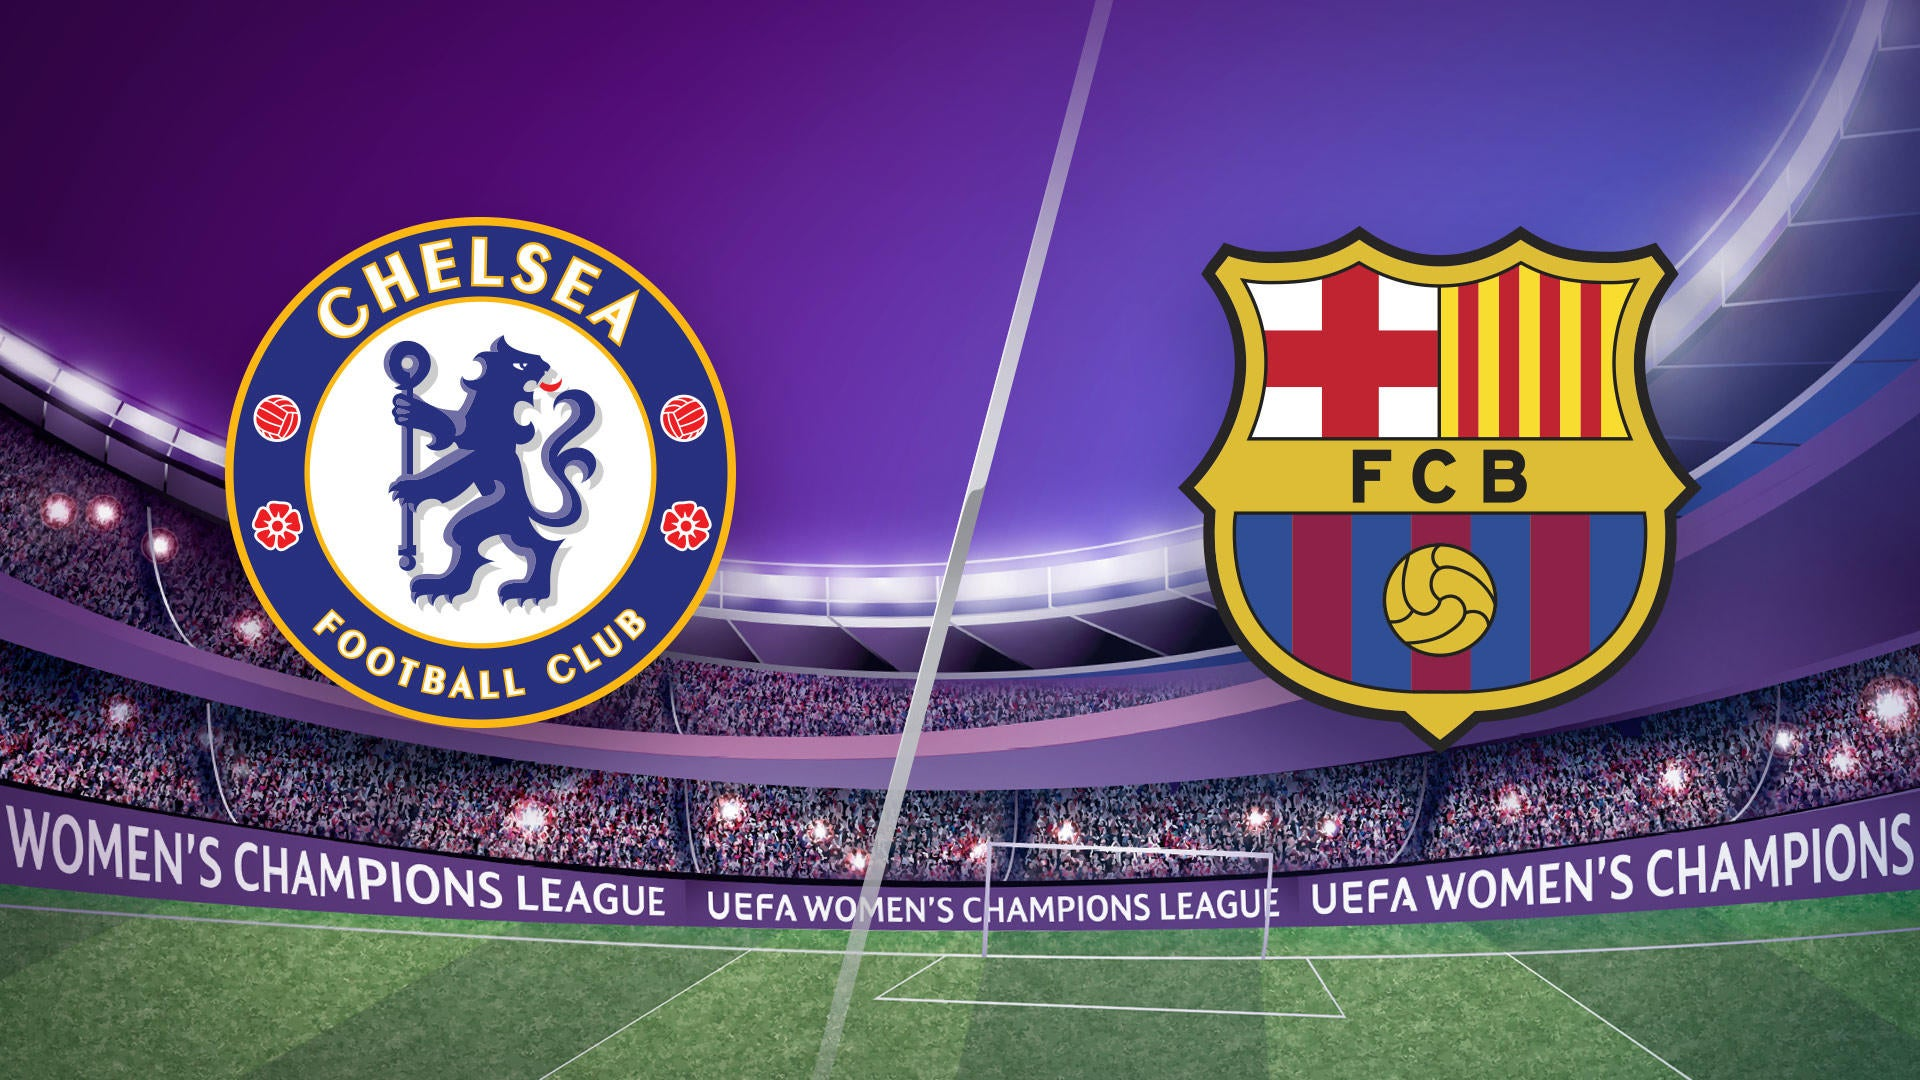 uwclf-womens-champions-cbssports-thumb-chelsea-vs-barcelona